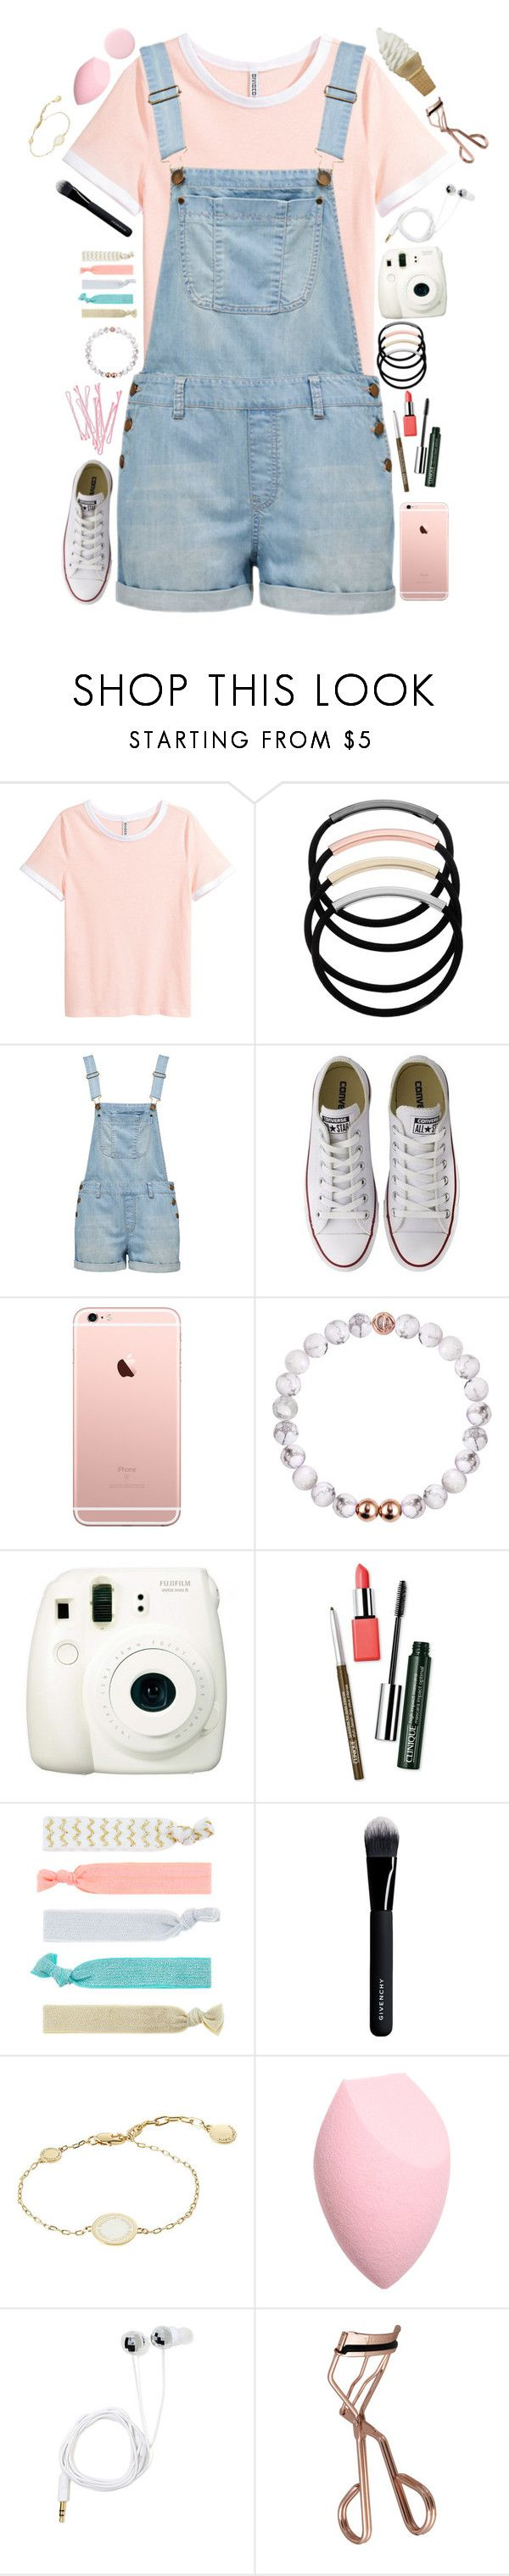 """Spring wya"" by cassieq6929 ❤ liked on Polyvore featuring L. Erickson, Forever New, Converse, BOBBY, Fujifilm, Clinique, Accessorize, Givenchy, Marc Jacobs and Tweezerman"